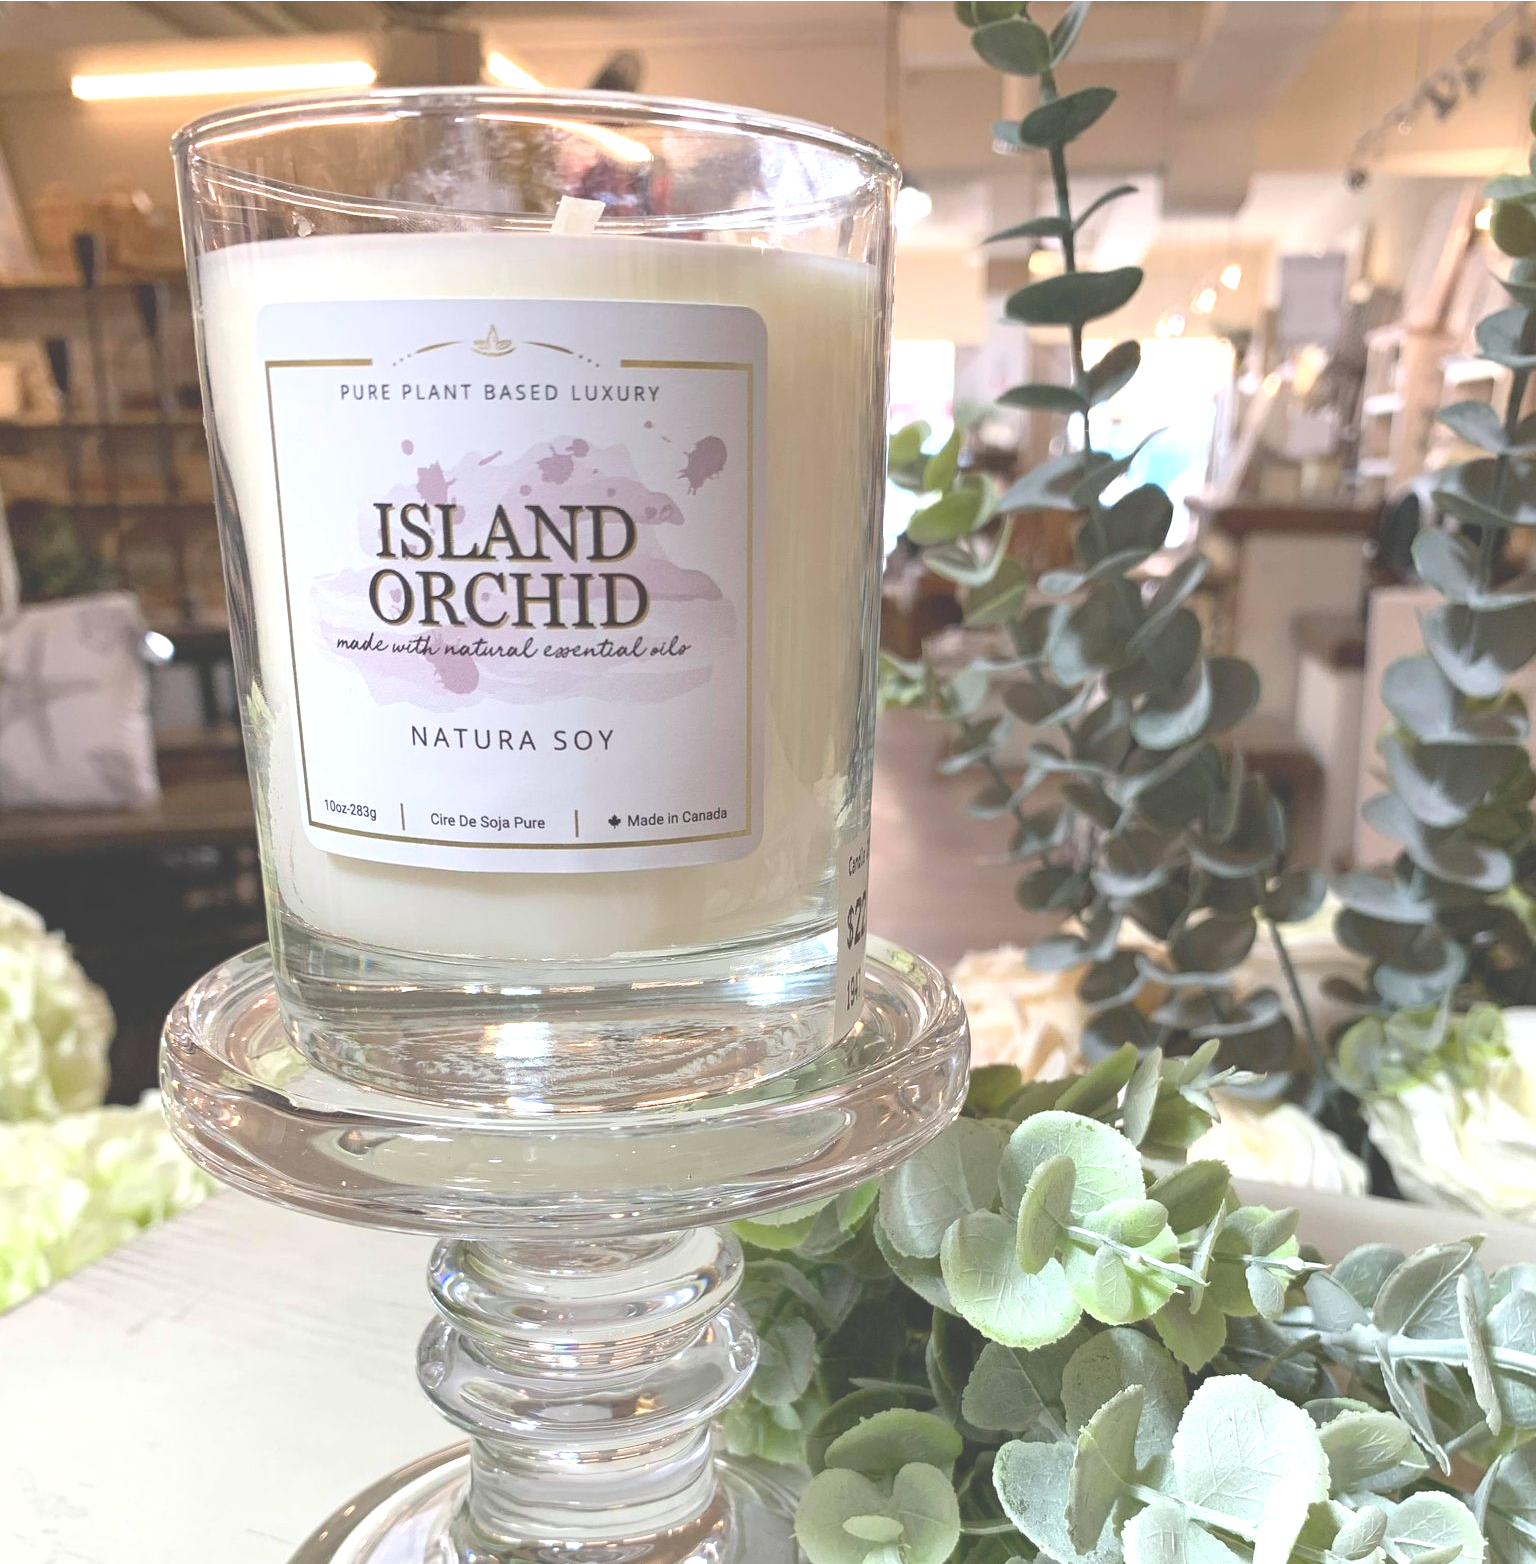 Island Orchid Delightfully tropical citrus notes of bergamot and pomelo along with soft orange blossom and rose finish with a dry down of sweet, slightly spicy floral notes of ylang and tuberose.